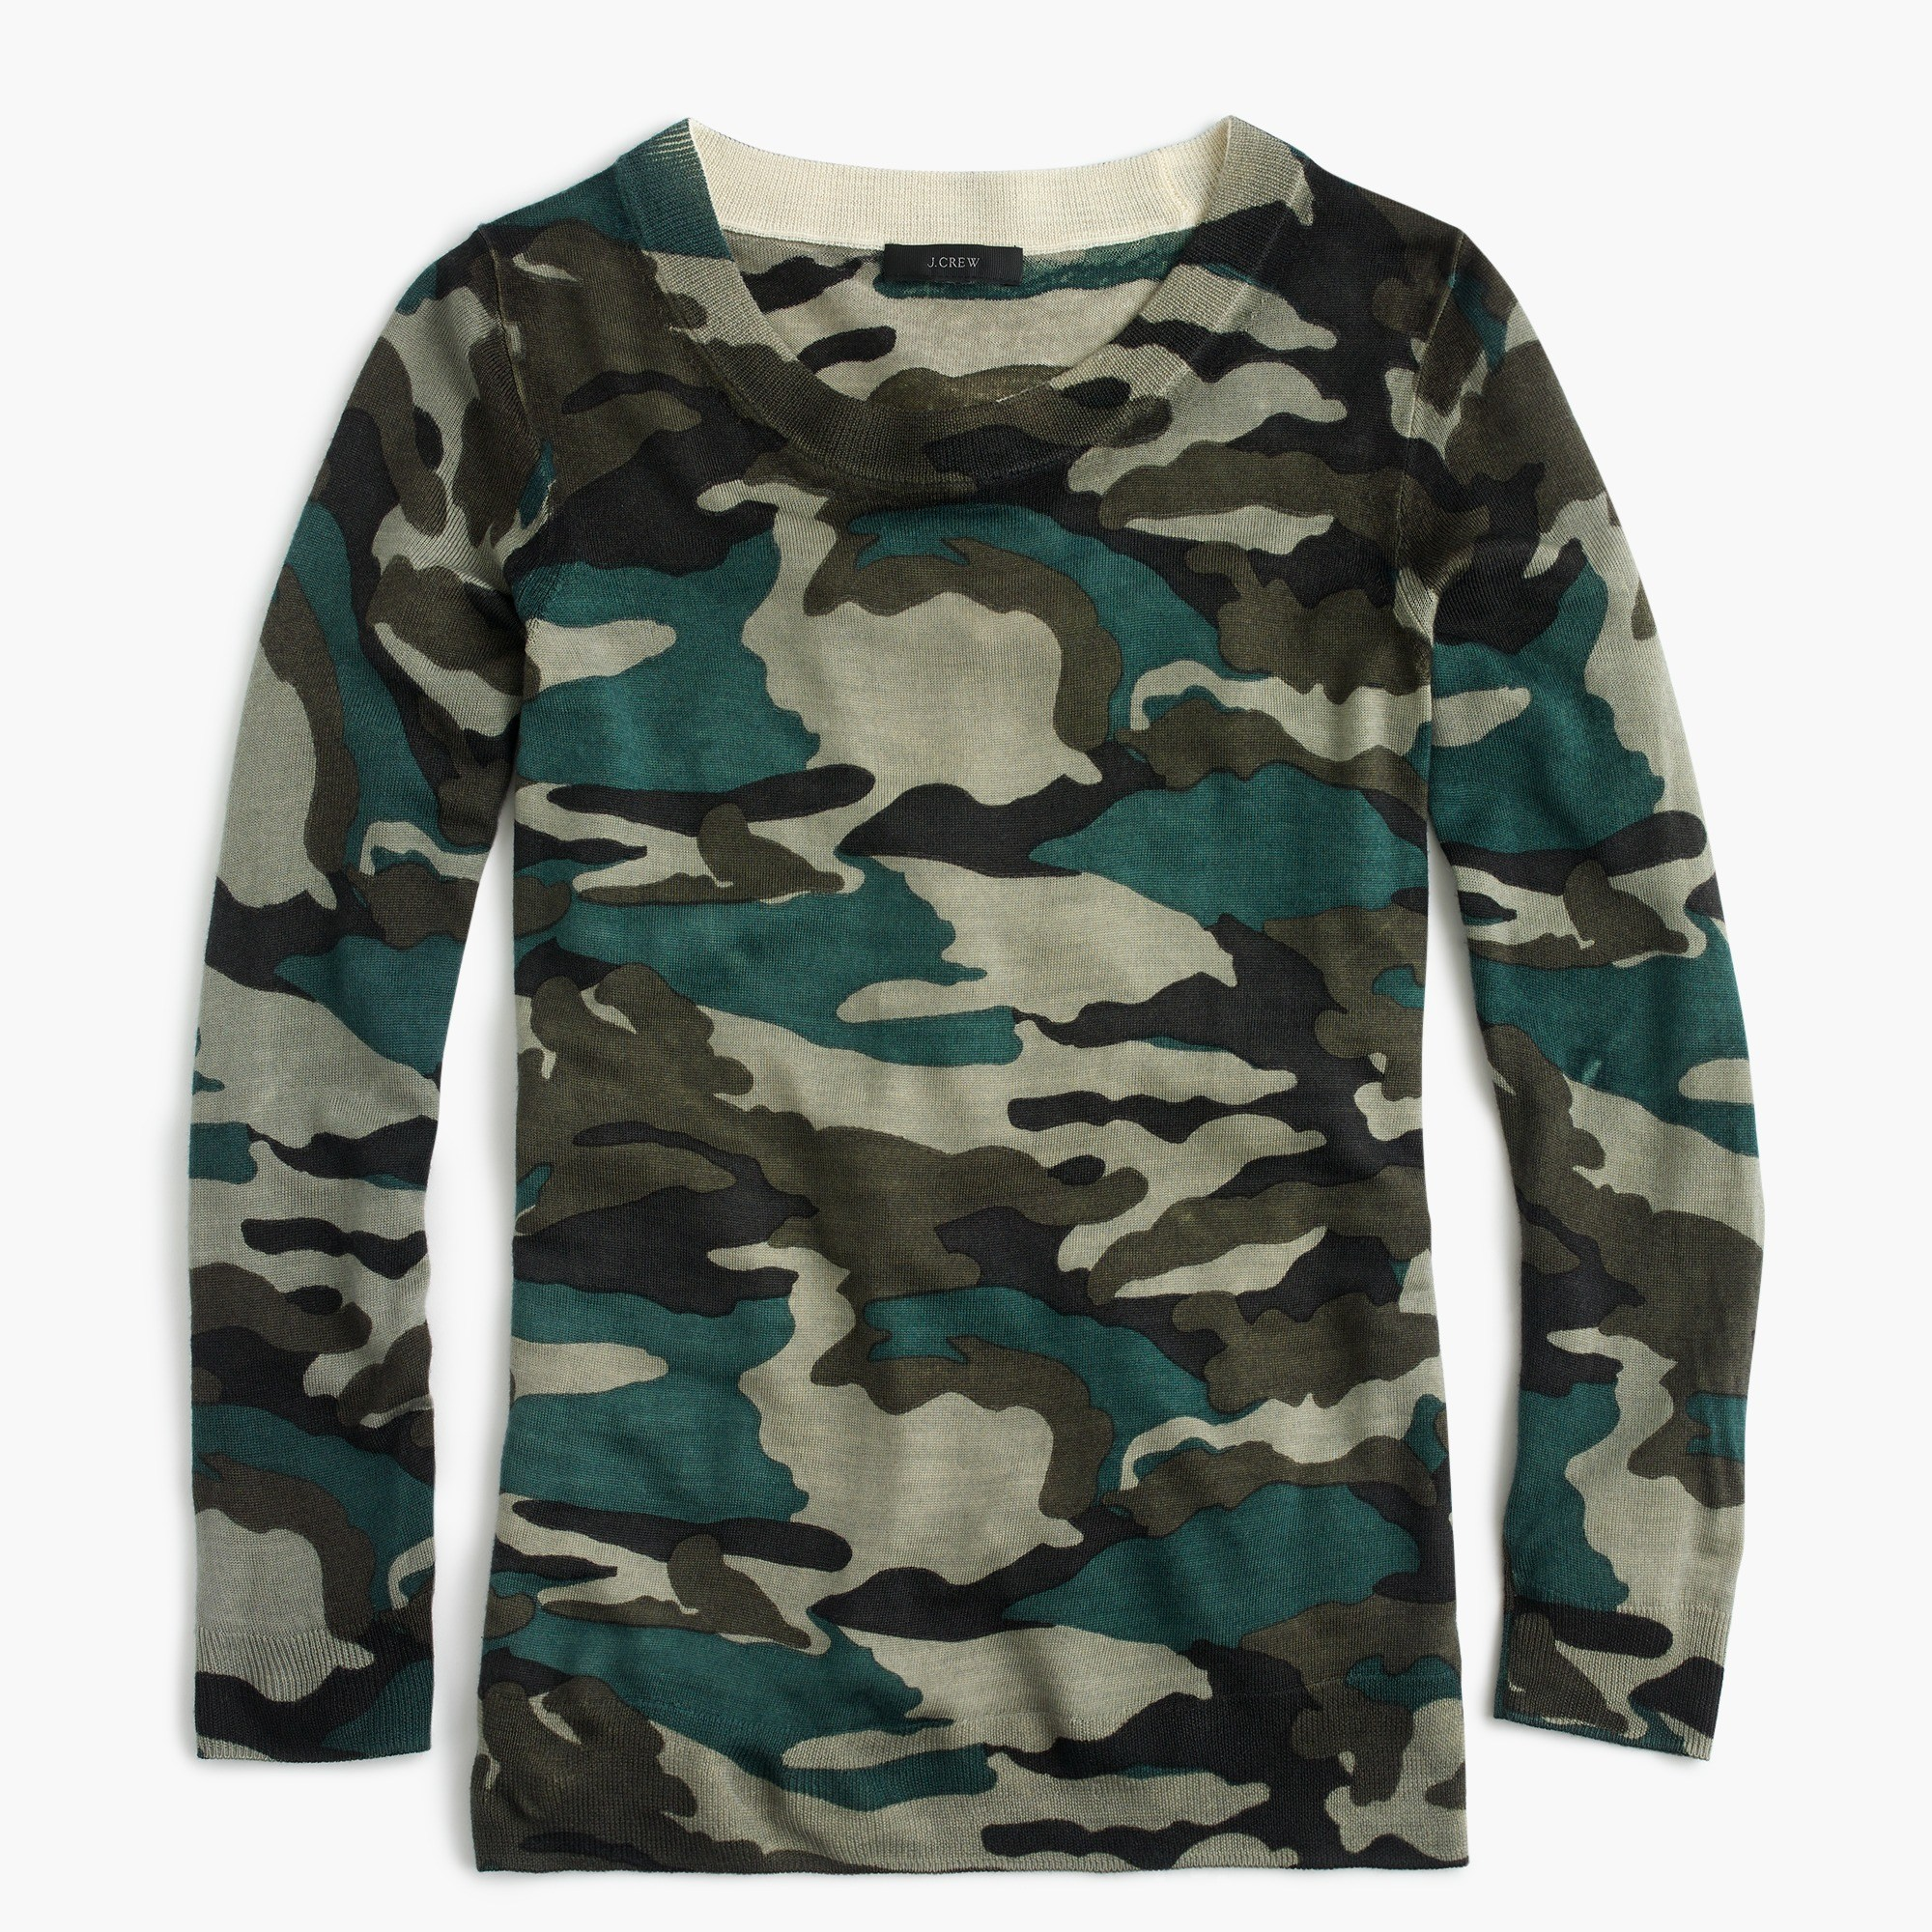 Tippi sweater in camouflage : Women pullovers | J.Crew